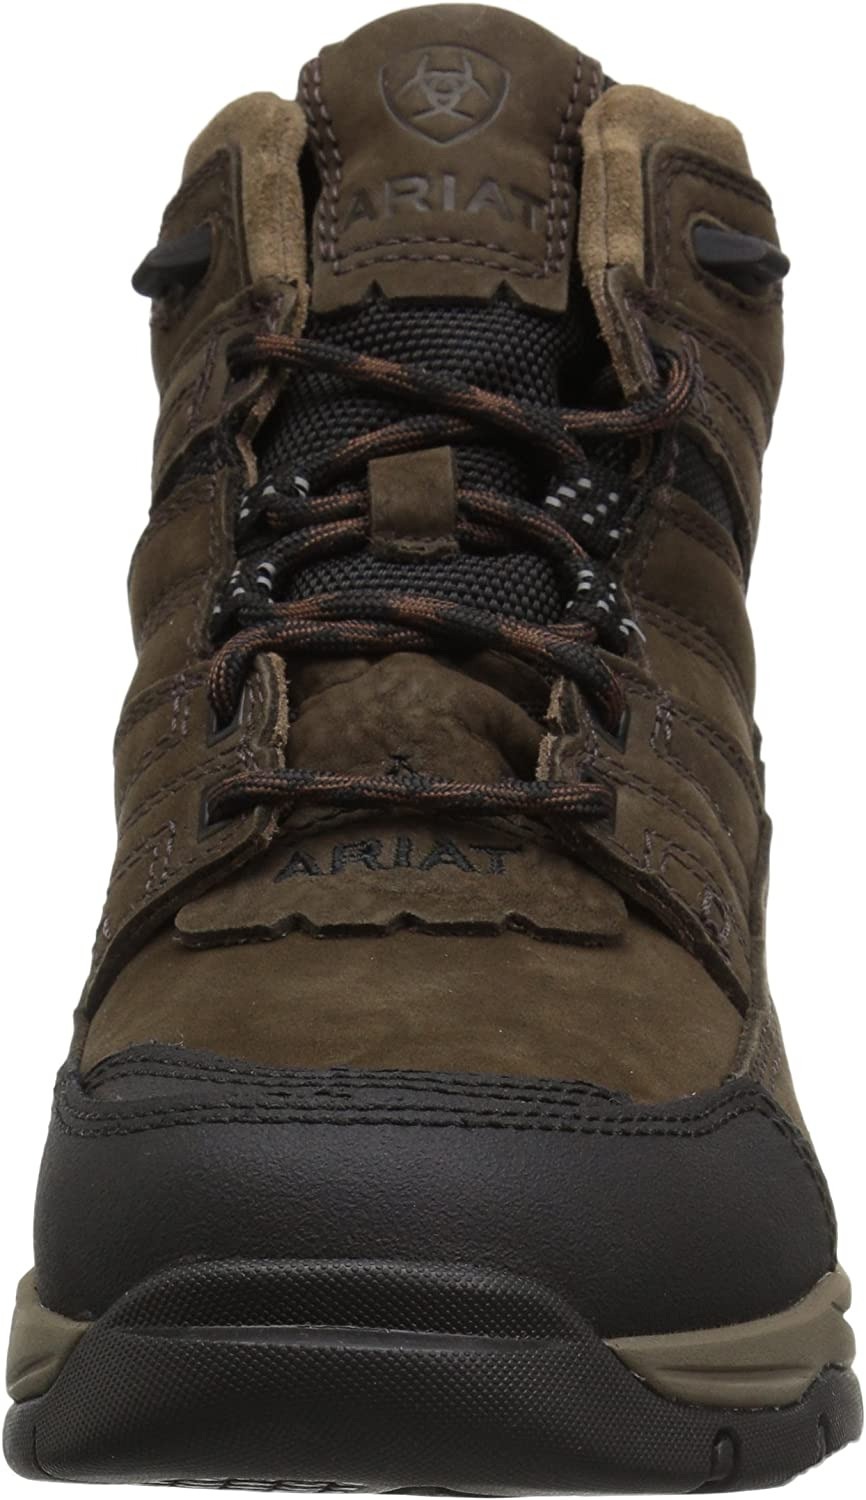 ARIAT Womens Terrain Pro H2o Insulated Hiking Boot